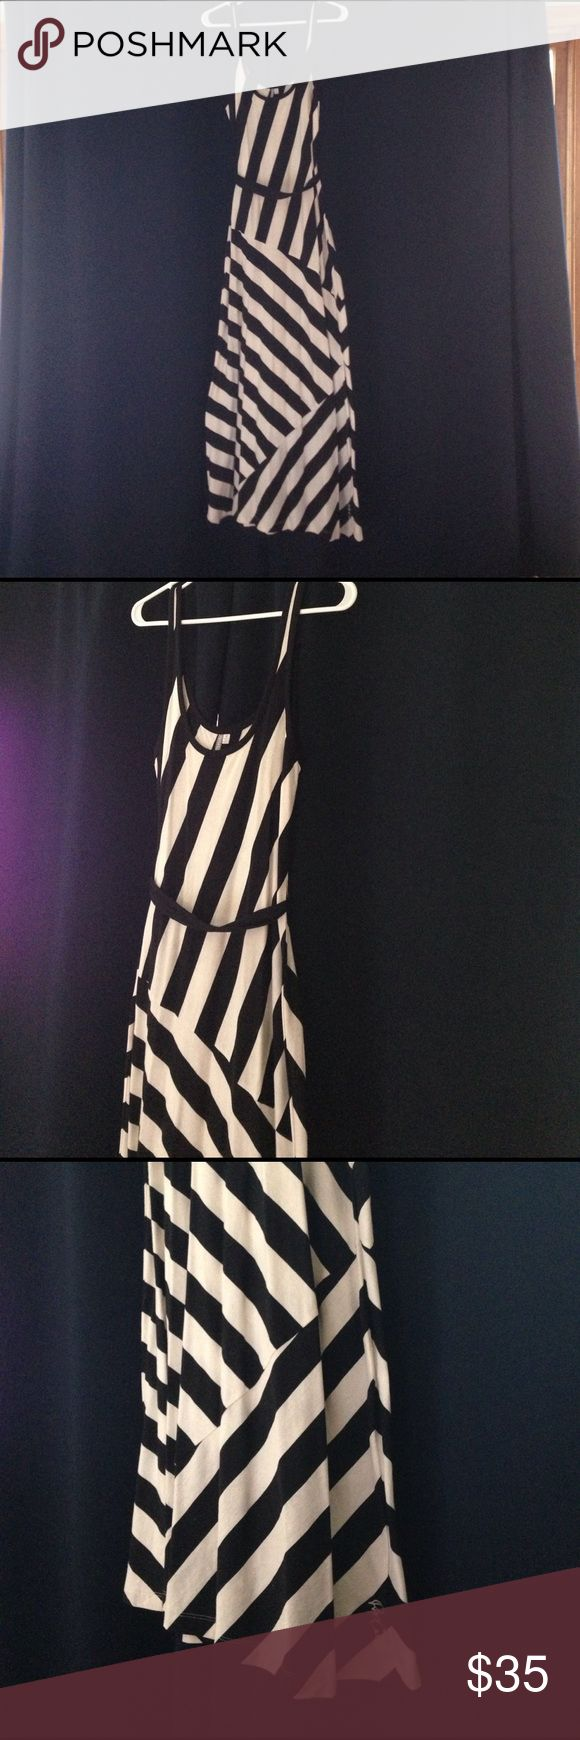 NWOT black and white maxi dress. Cute and comfortable black and white striped maxi dress. Tie belt. 60% cotton 40% polyester. Rip Curl Dresses Maxi